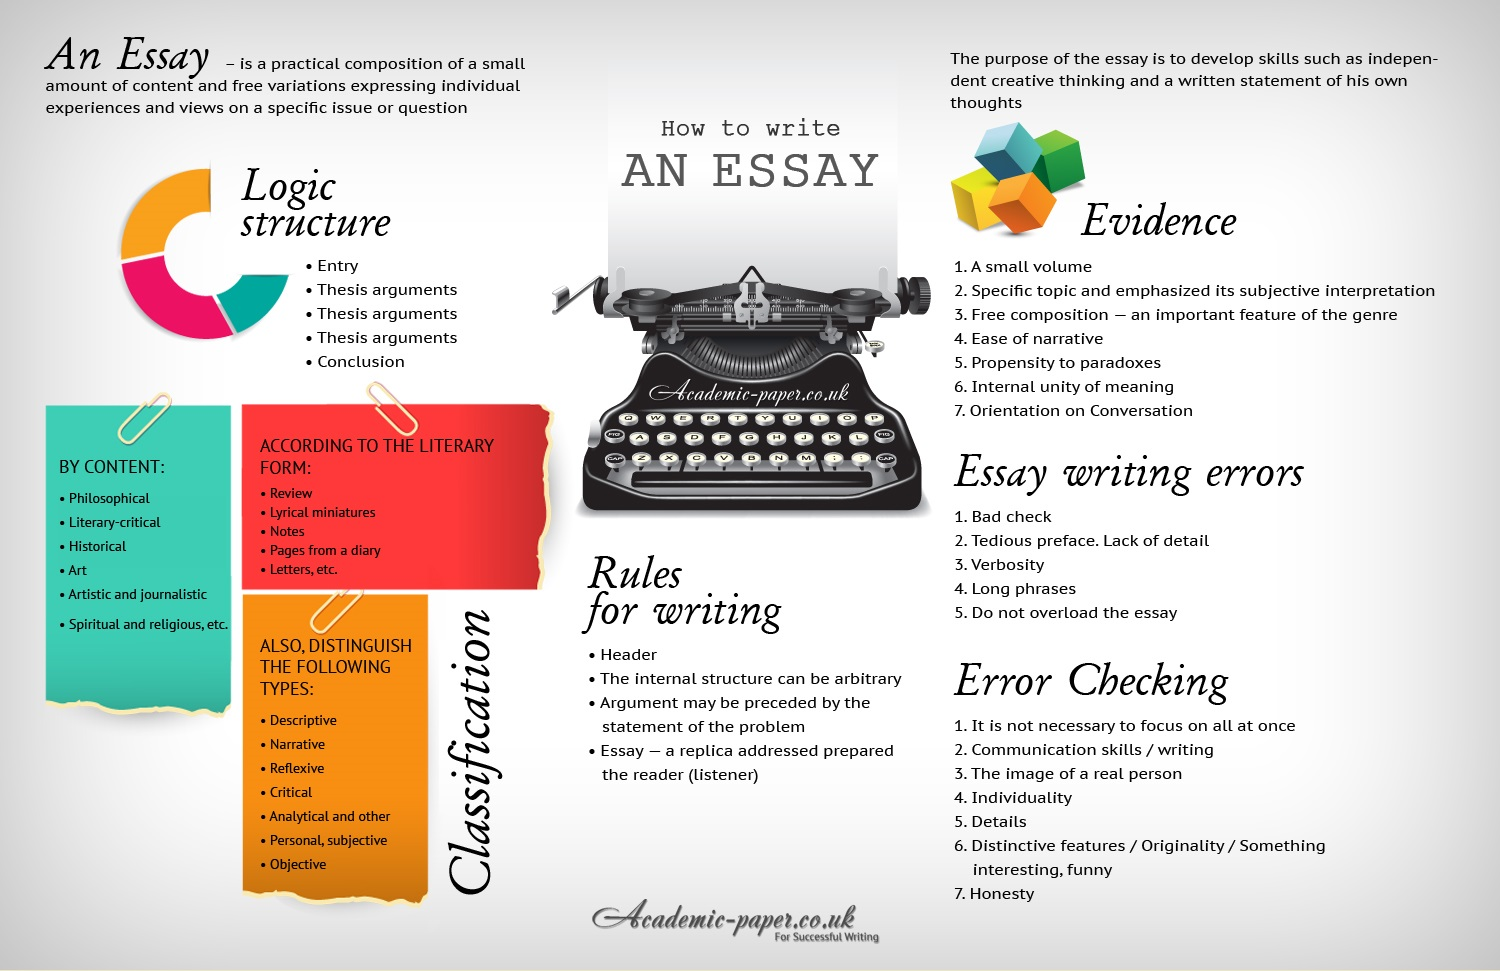 writing essay essay writing guidelines writing essay 1492901992